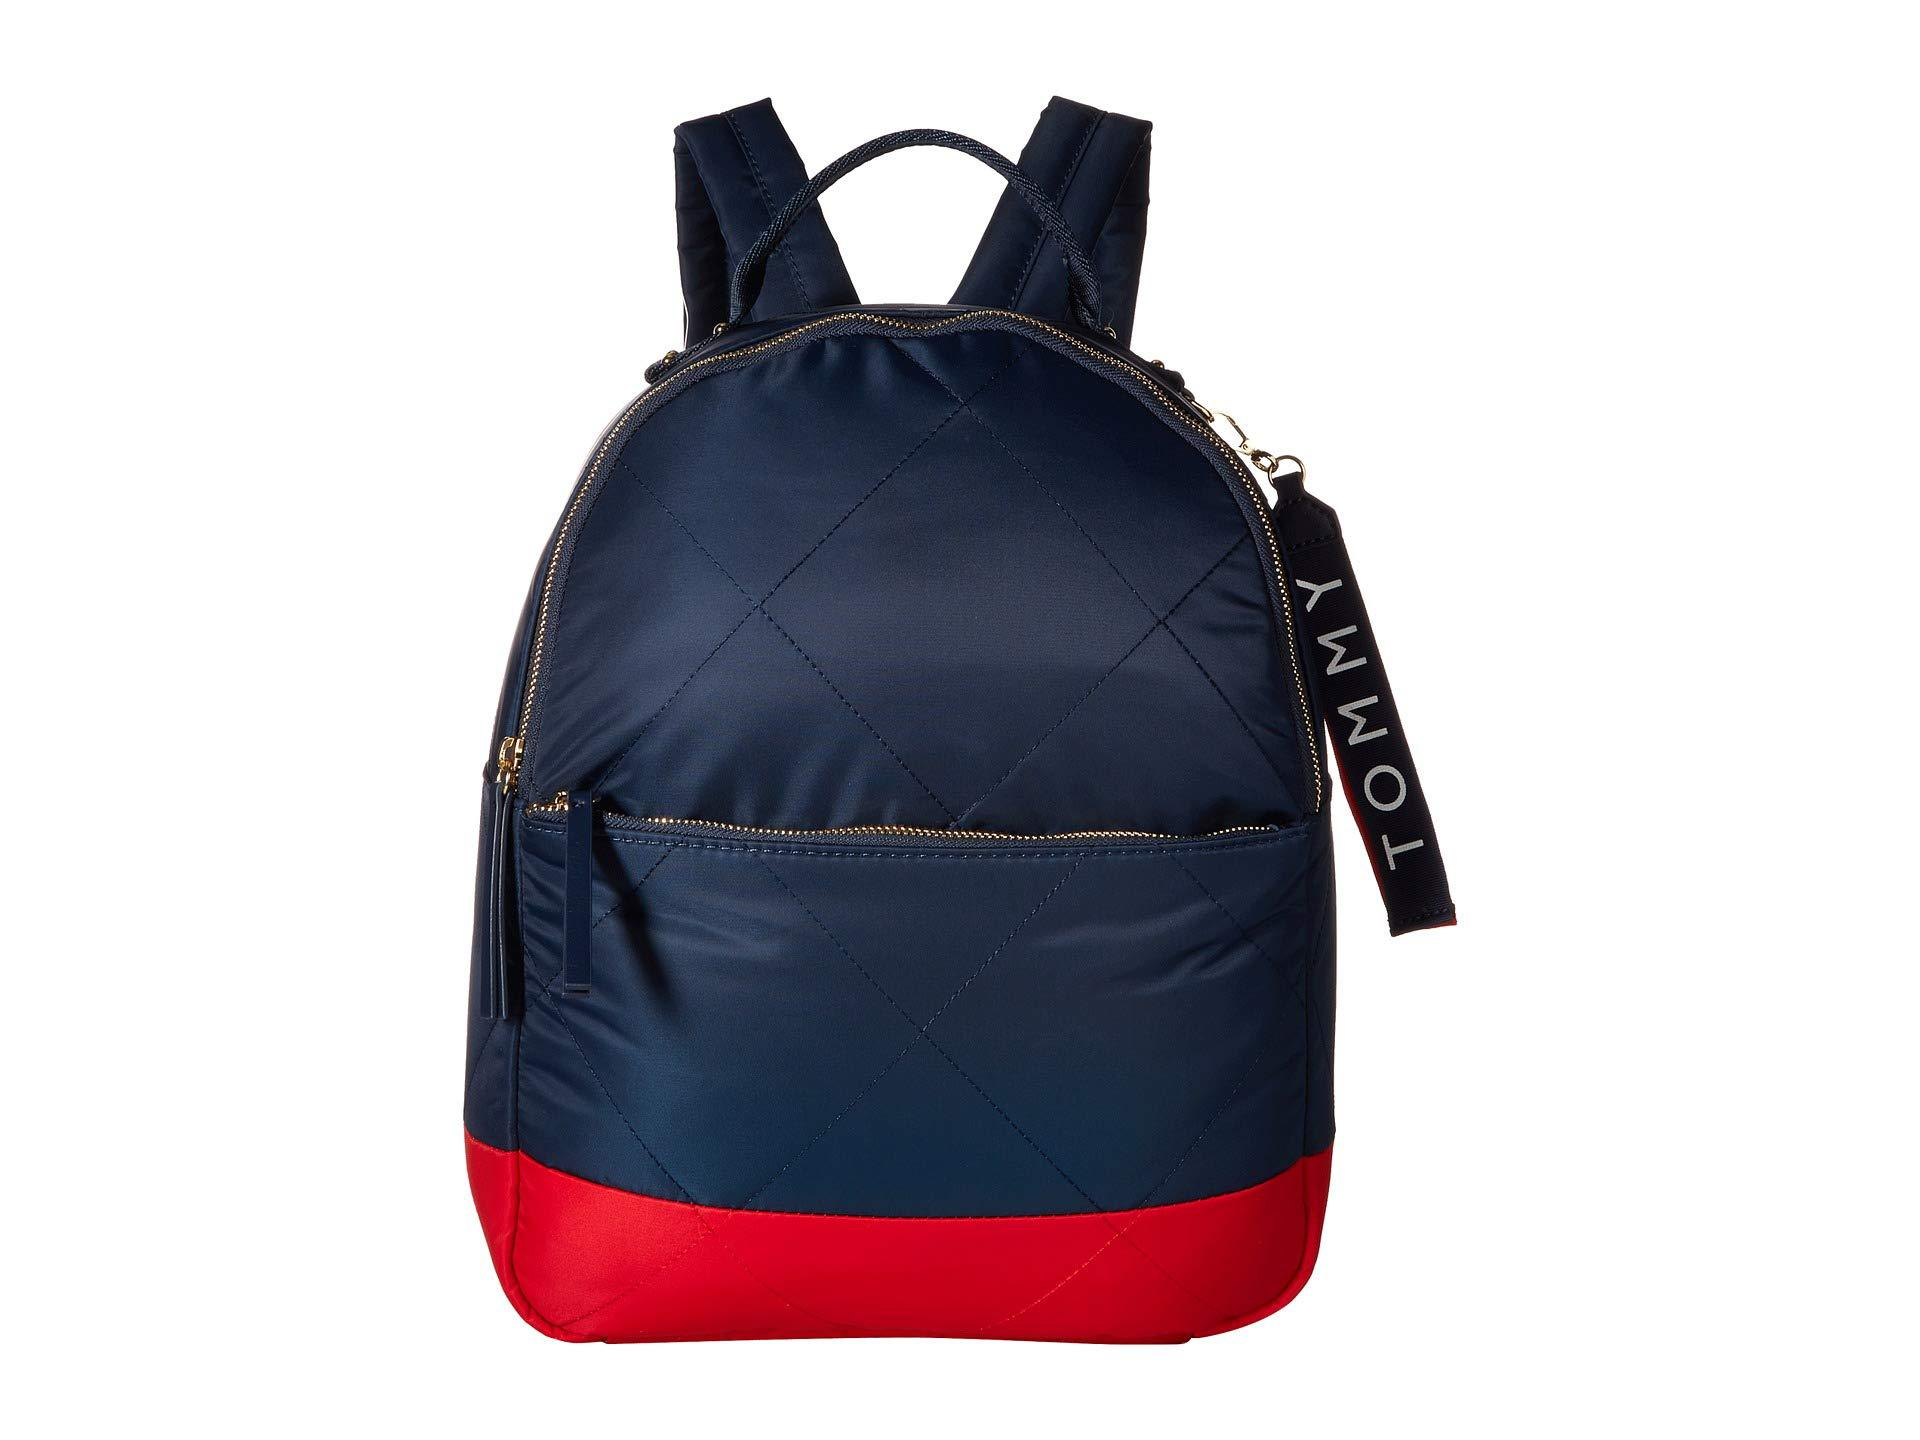 625eb8f2f5 Lyst - Tommy Hilfiger Kensington Backpack in Blue